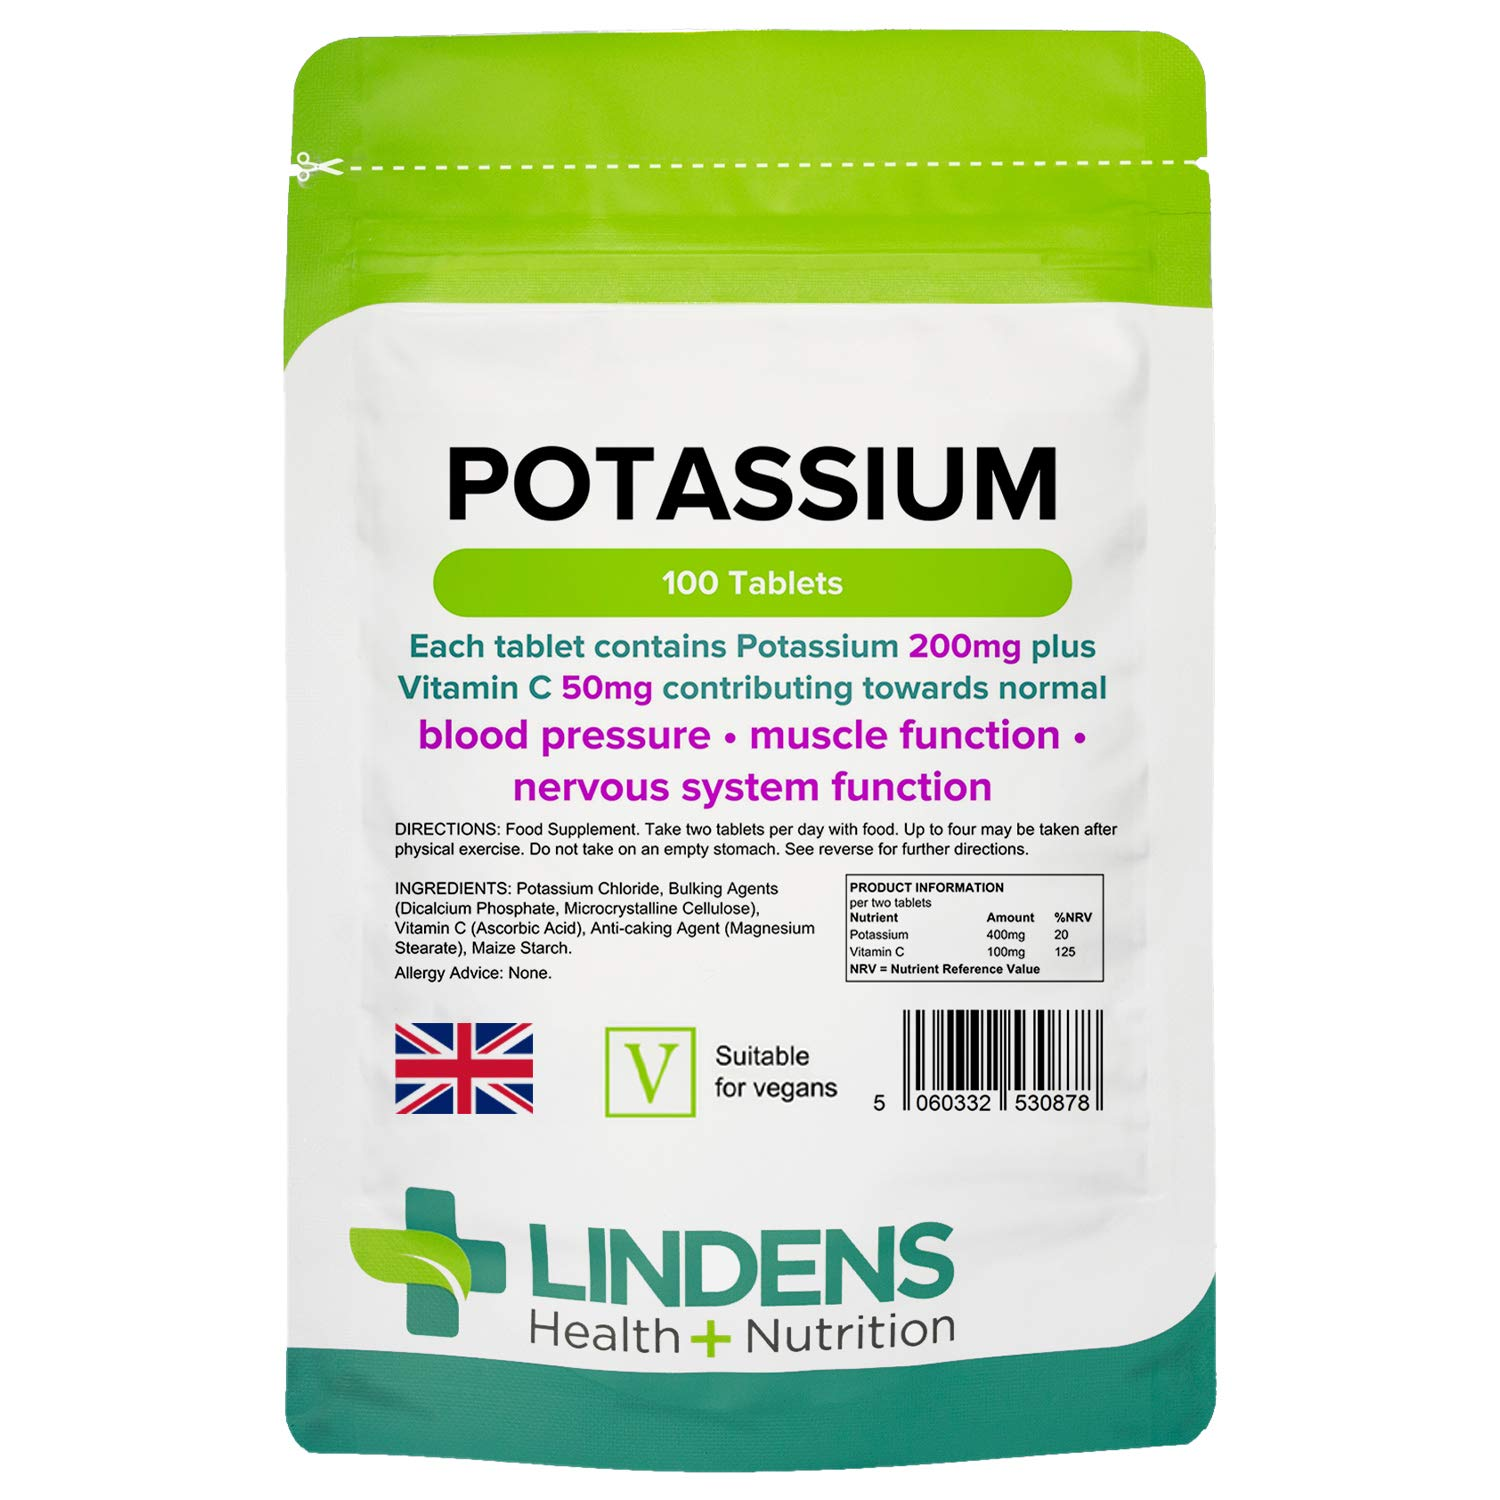 Lindens Potassium 200mg Tablets with 50mg Vitamin C - 100 Tablets - Contributes to Normal Blood Pressure, Muscle Function and Nervous System Function - UK Manufacturer, Letterbox Friendly